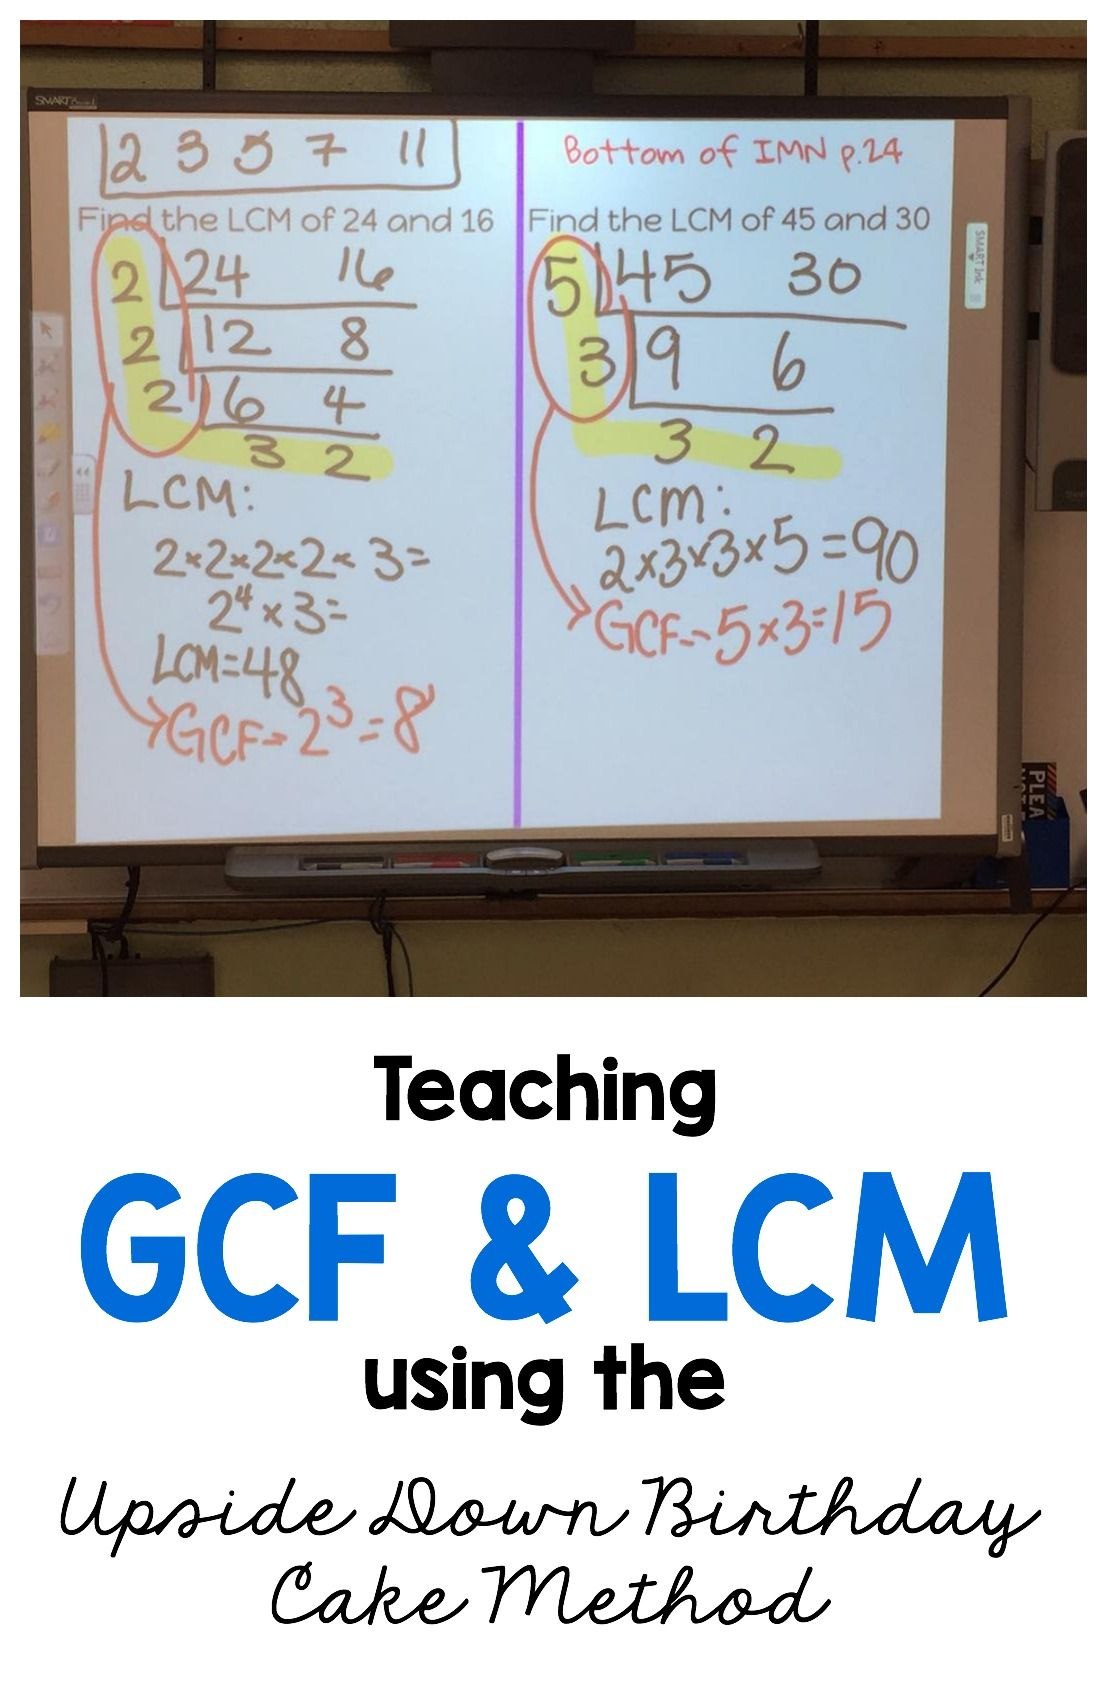 Prime Factorization Gcf Amp Lcm With The Upside Down Cake